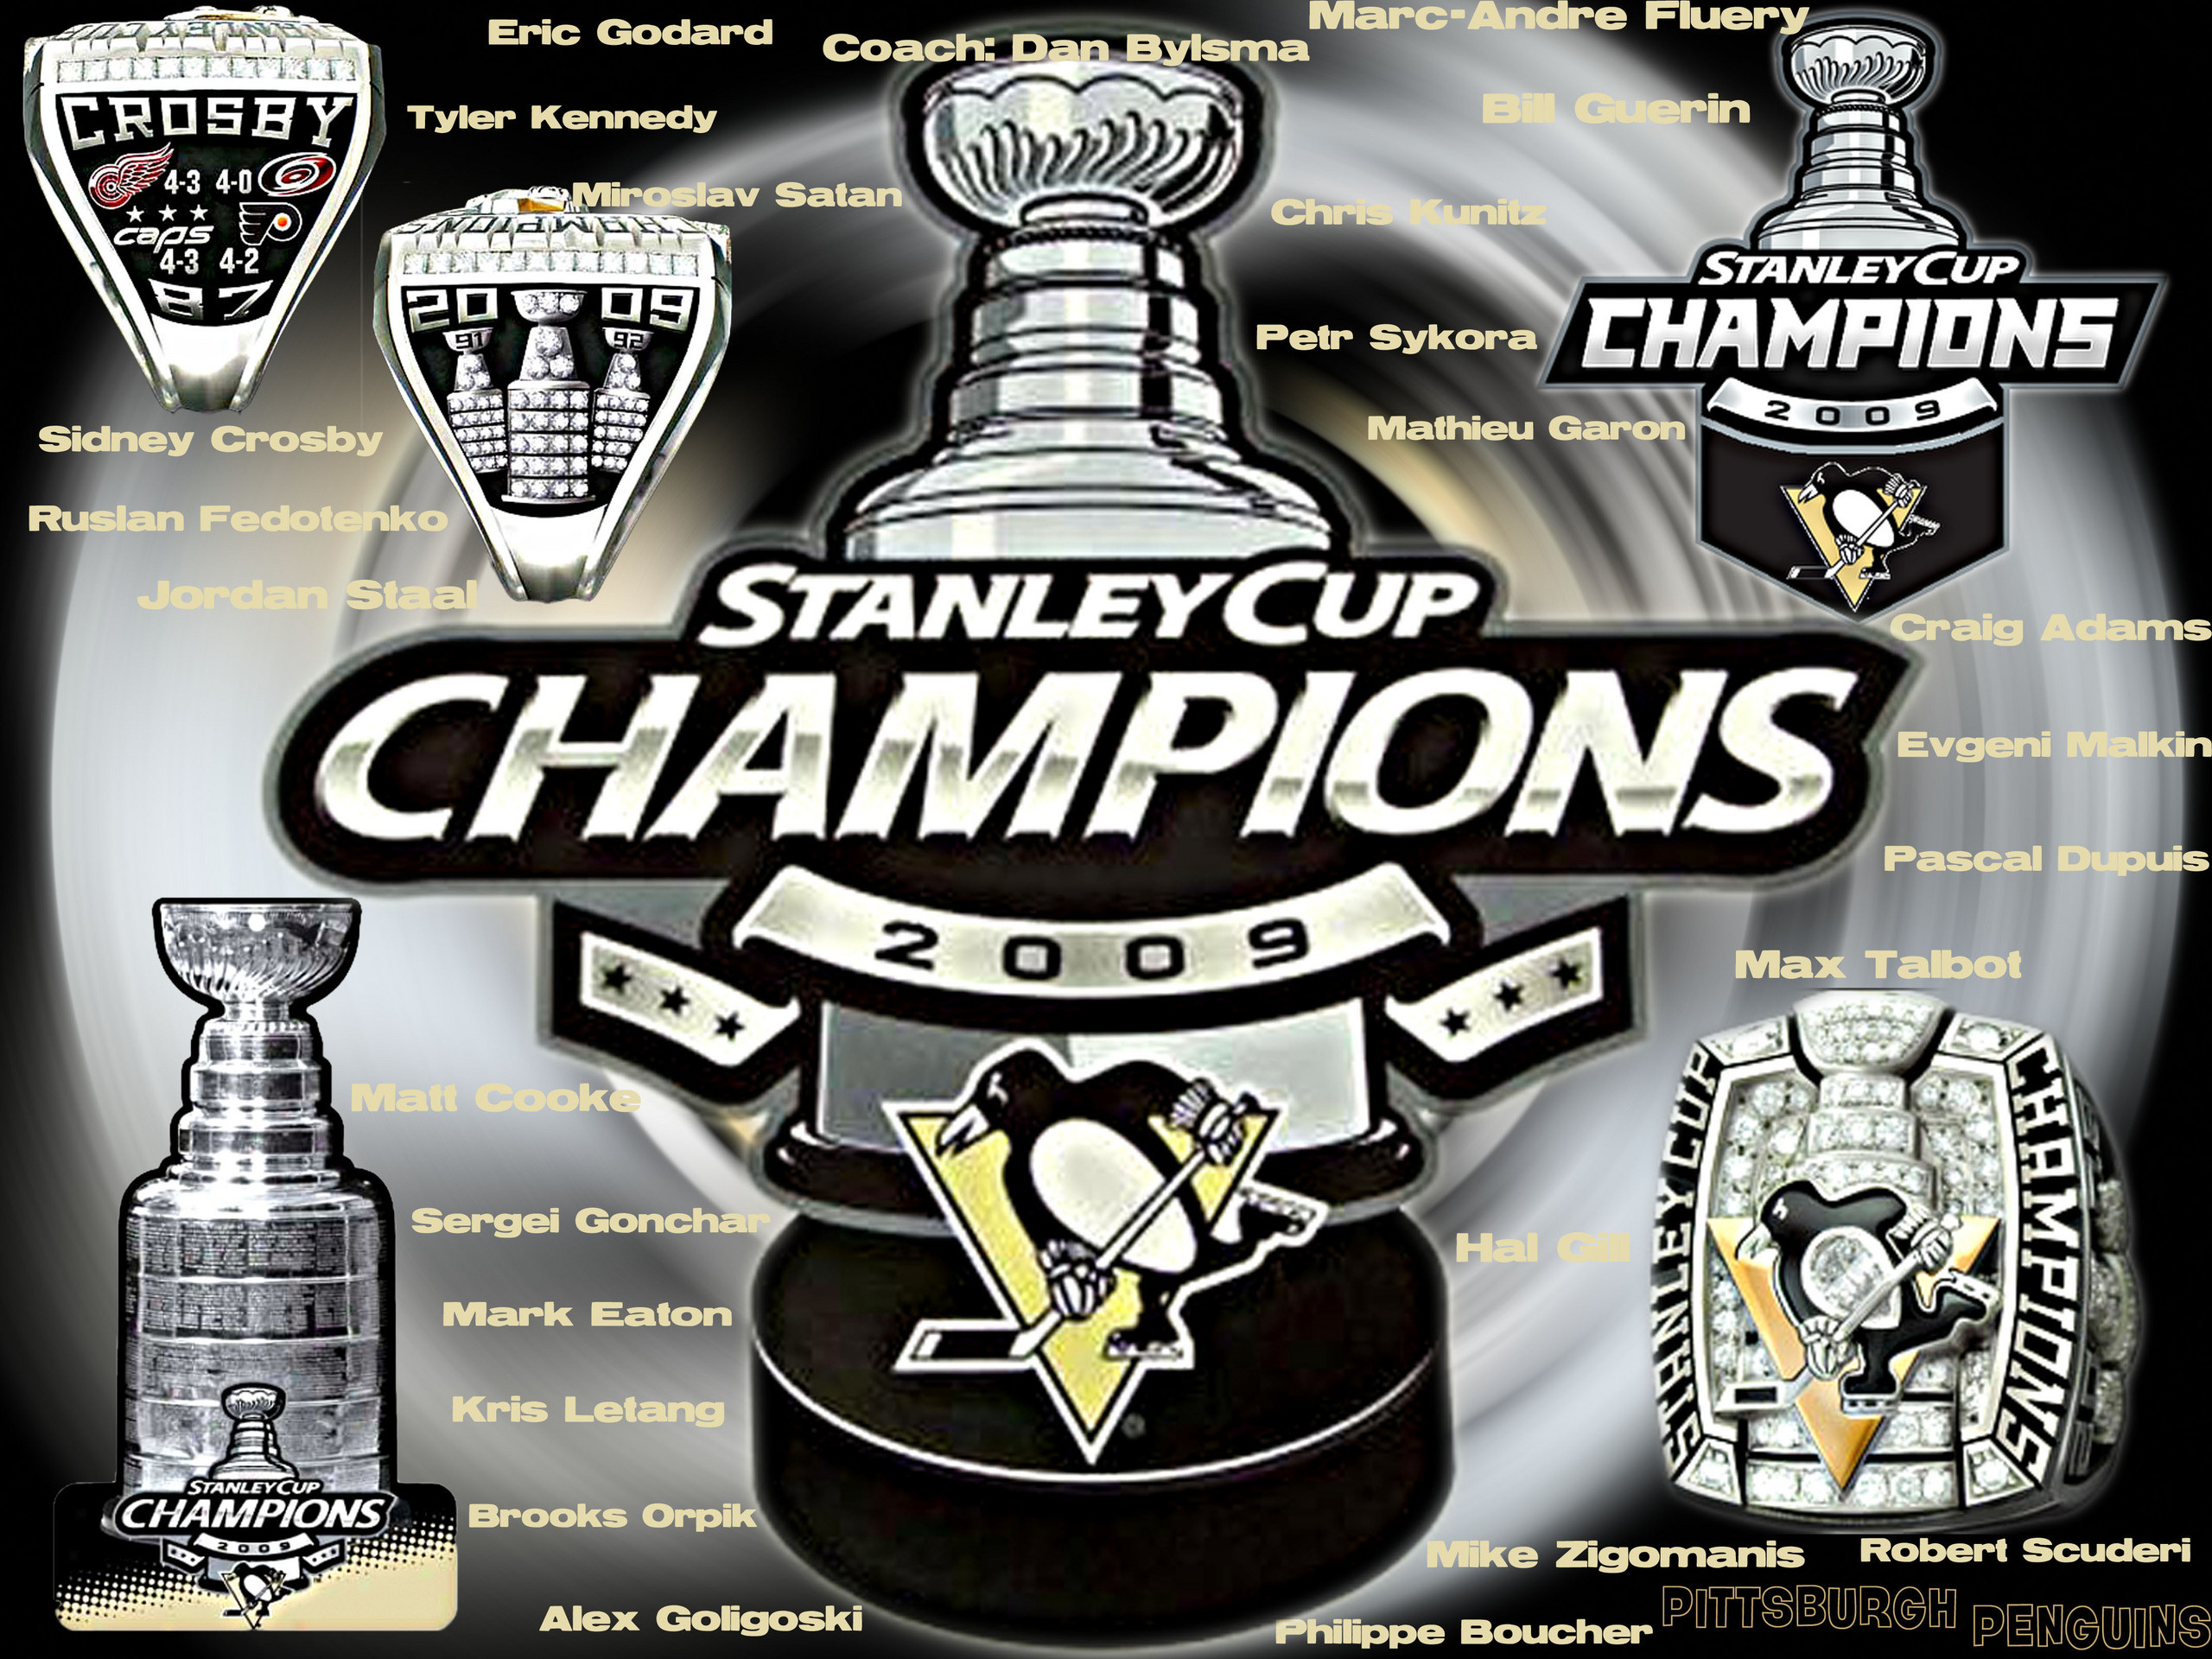 Preview Pittsburgh Penguins Stanley Cup Photos by Obrad Feldon